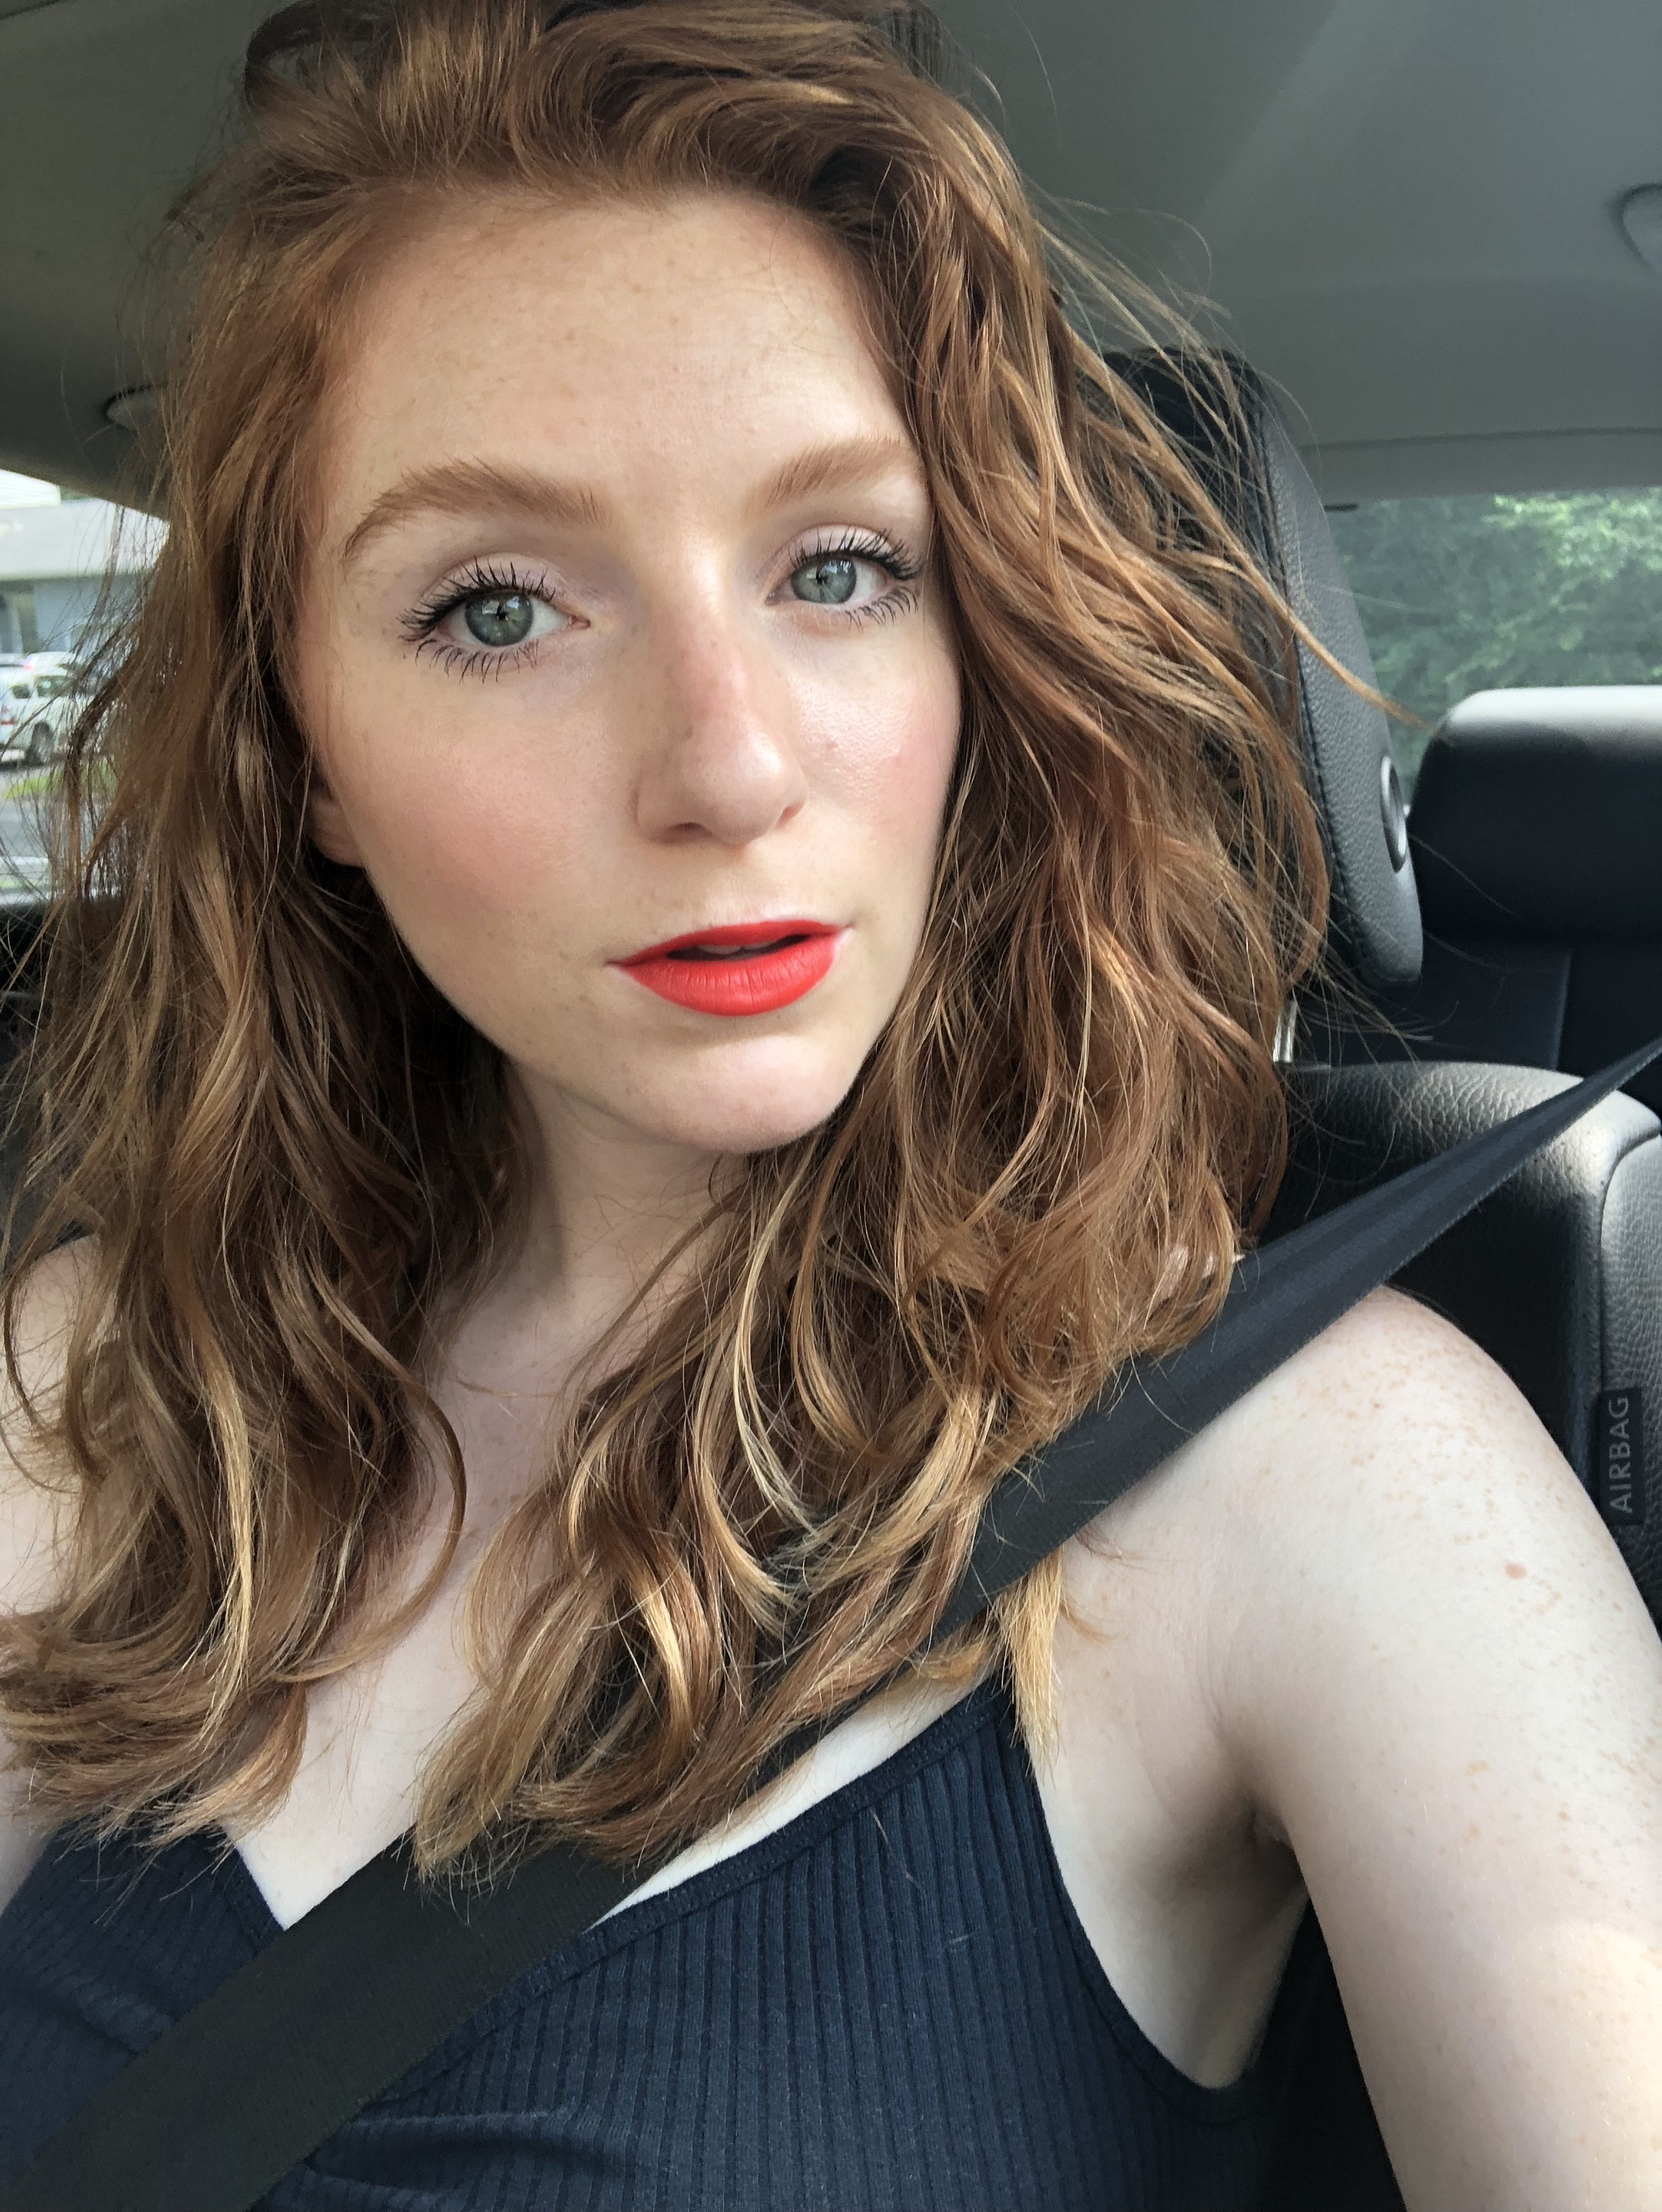 Car selfie in my 4th of July makeup ft. rosy cheeks in  Kjaer Weis Blush in Blossoming